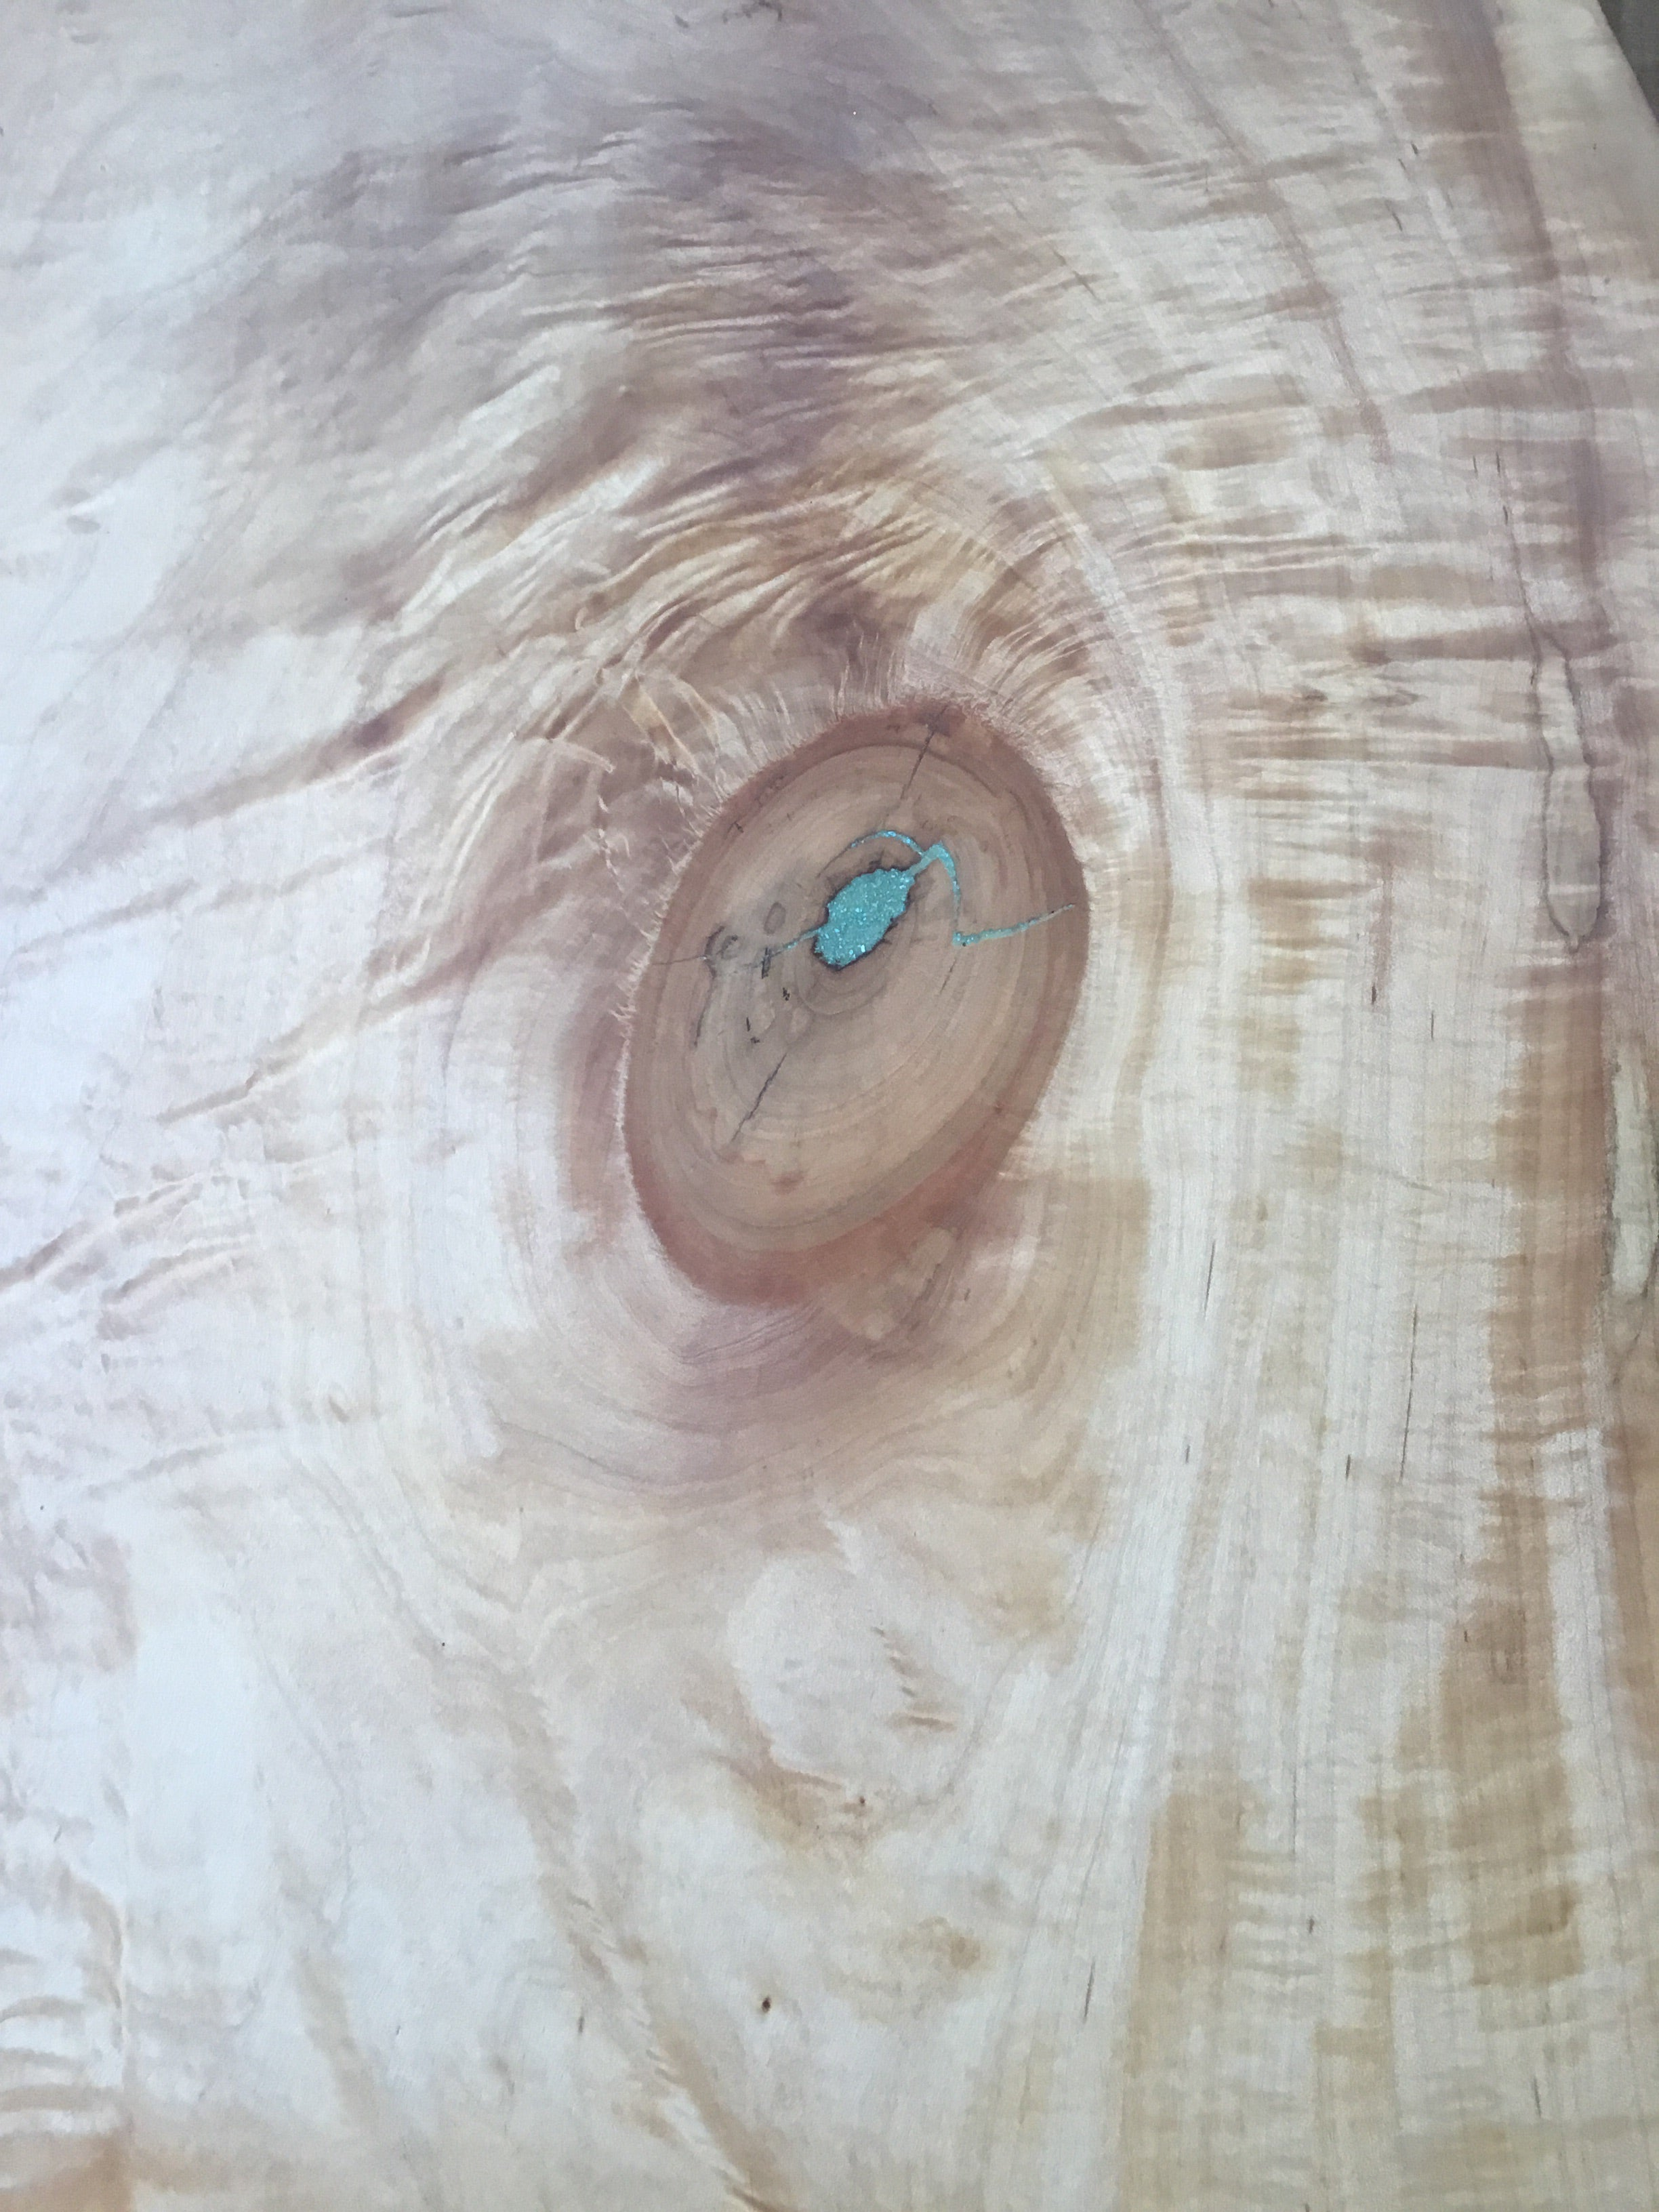 Live Edge Dining Table Top with Crushed Turquoise